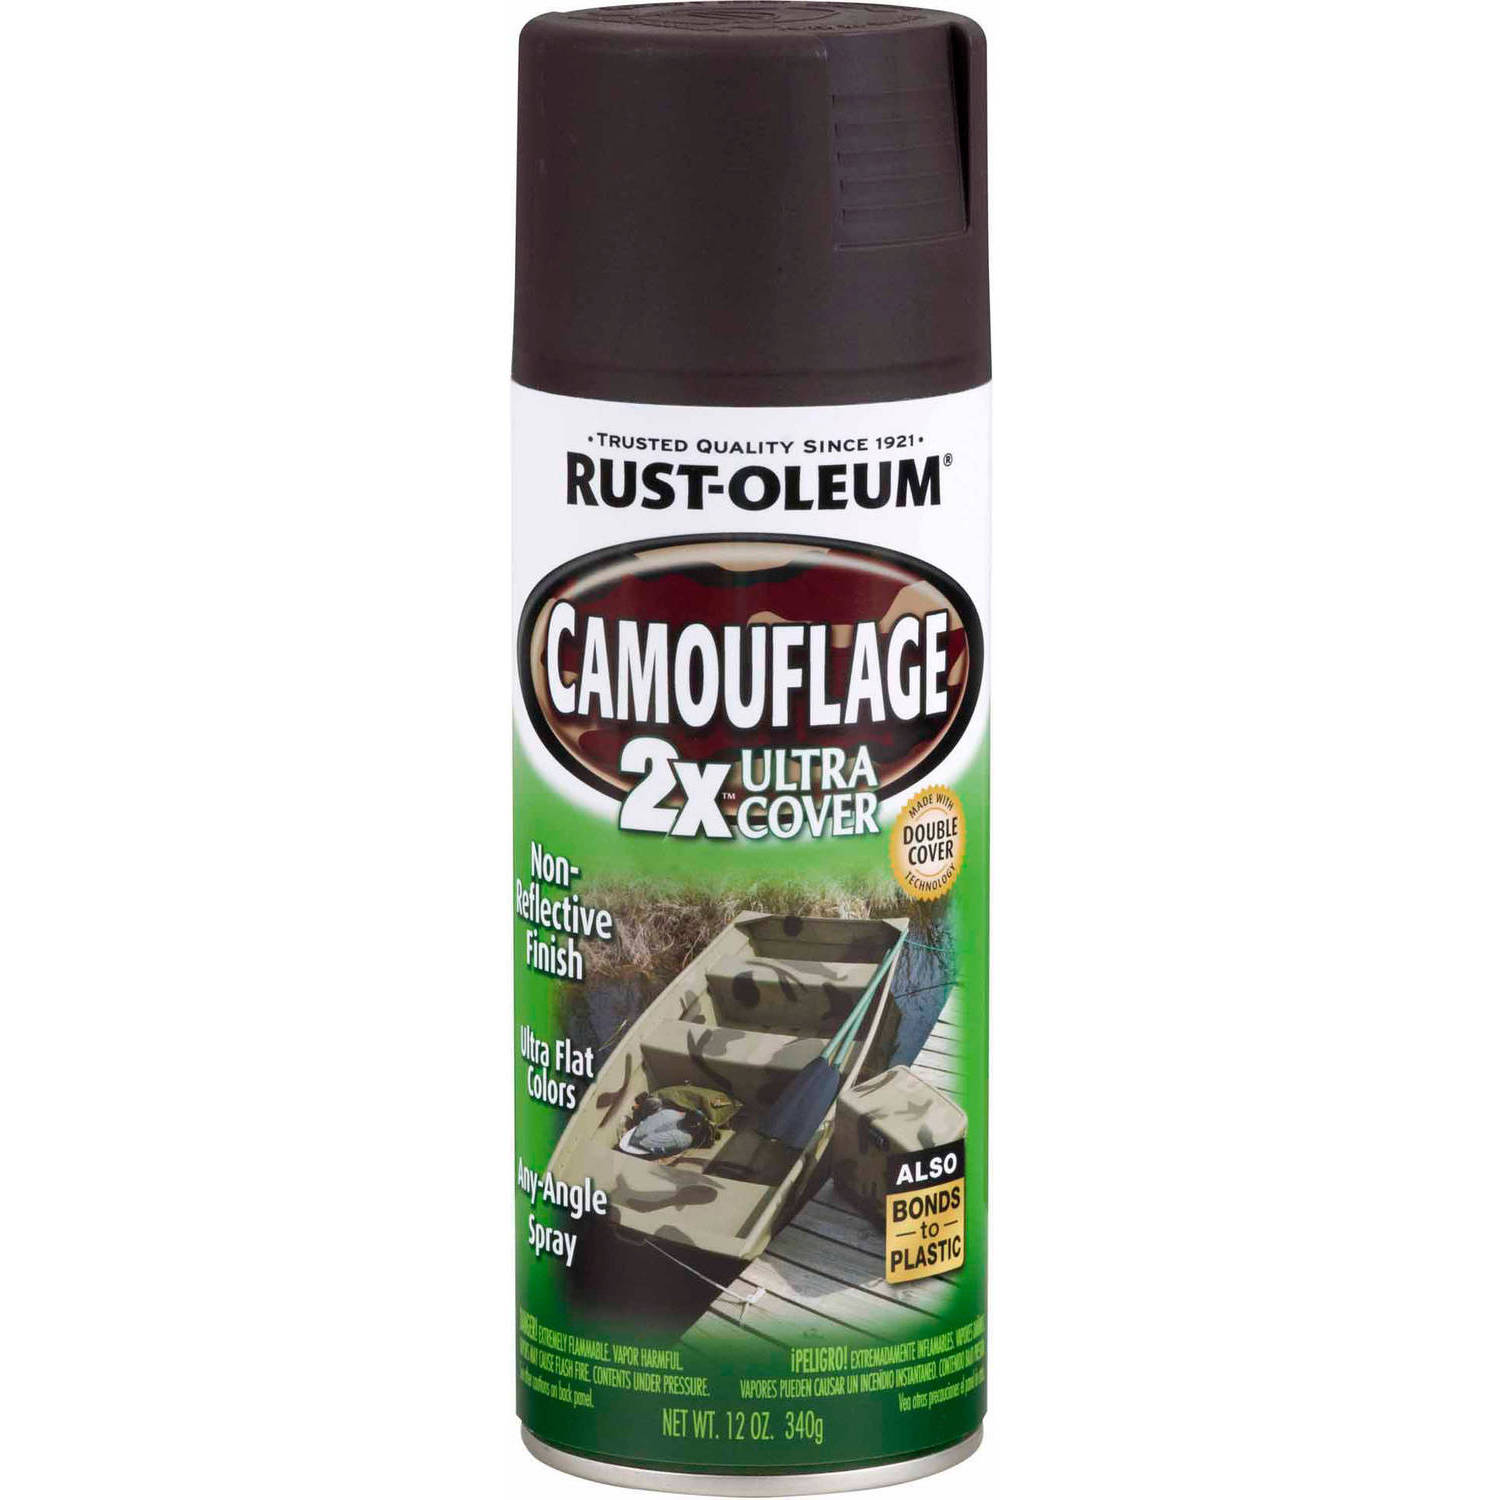 (3 Pack) Rust-Oleum Camouflage Ultra Cover 2x